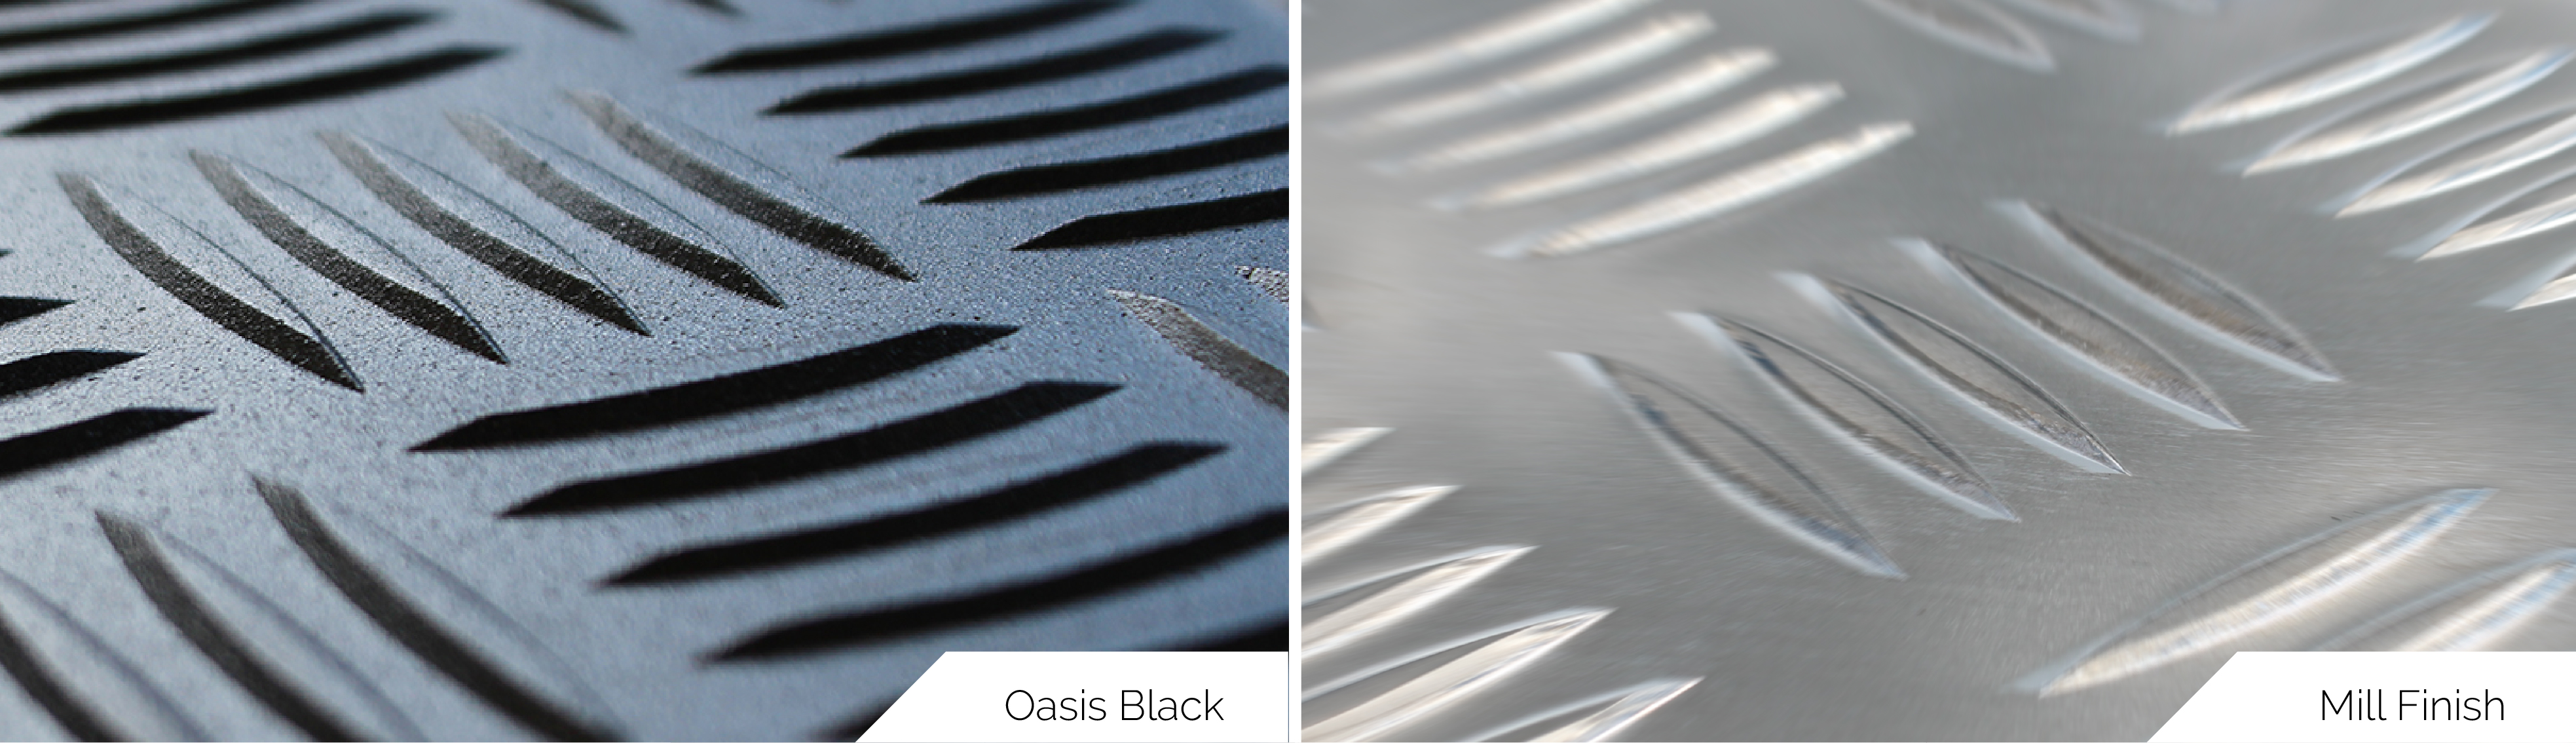 Utemaster Load Lid Oasis Black vs Mill Finish